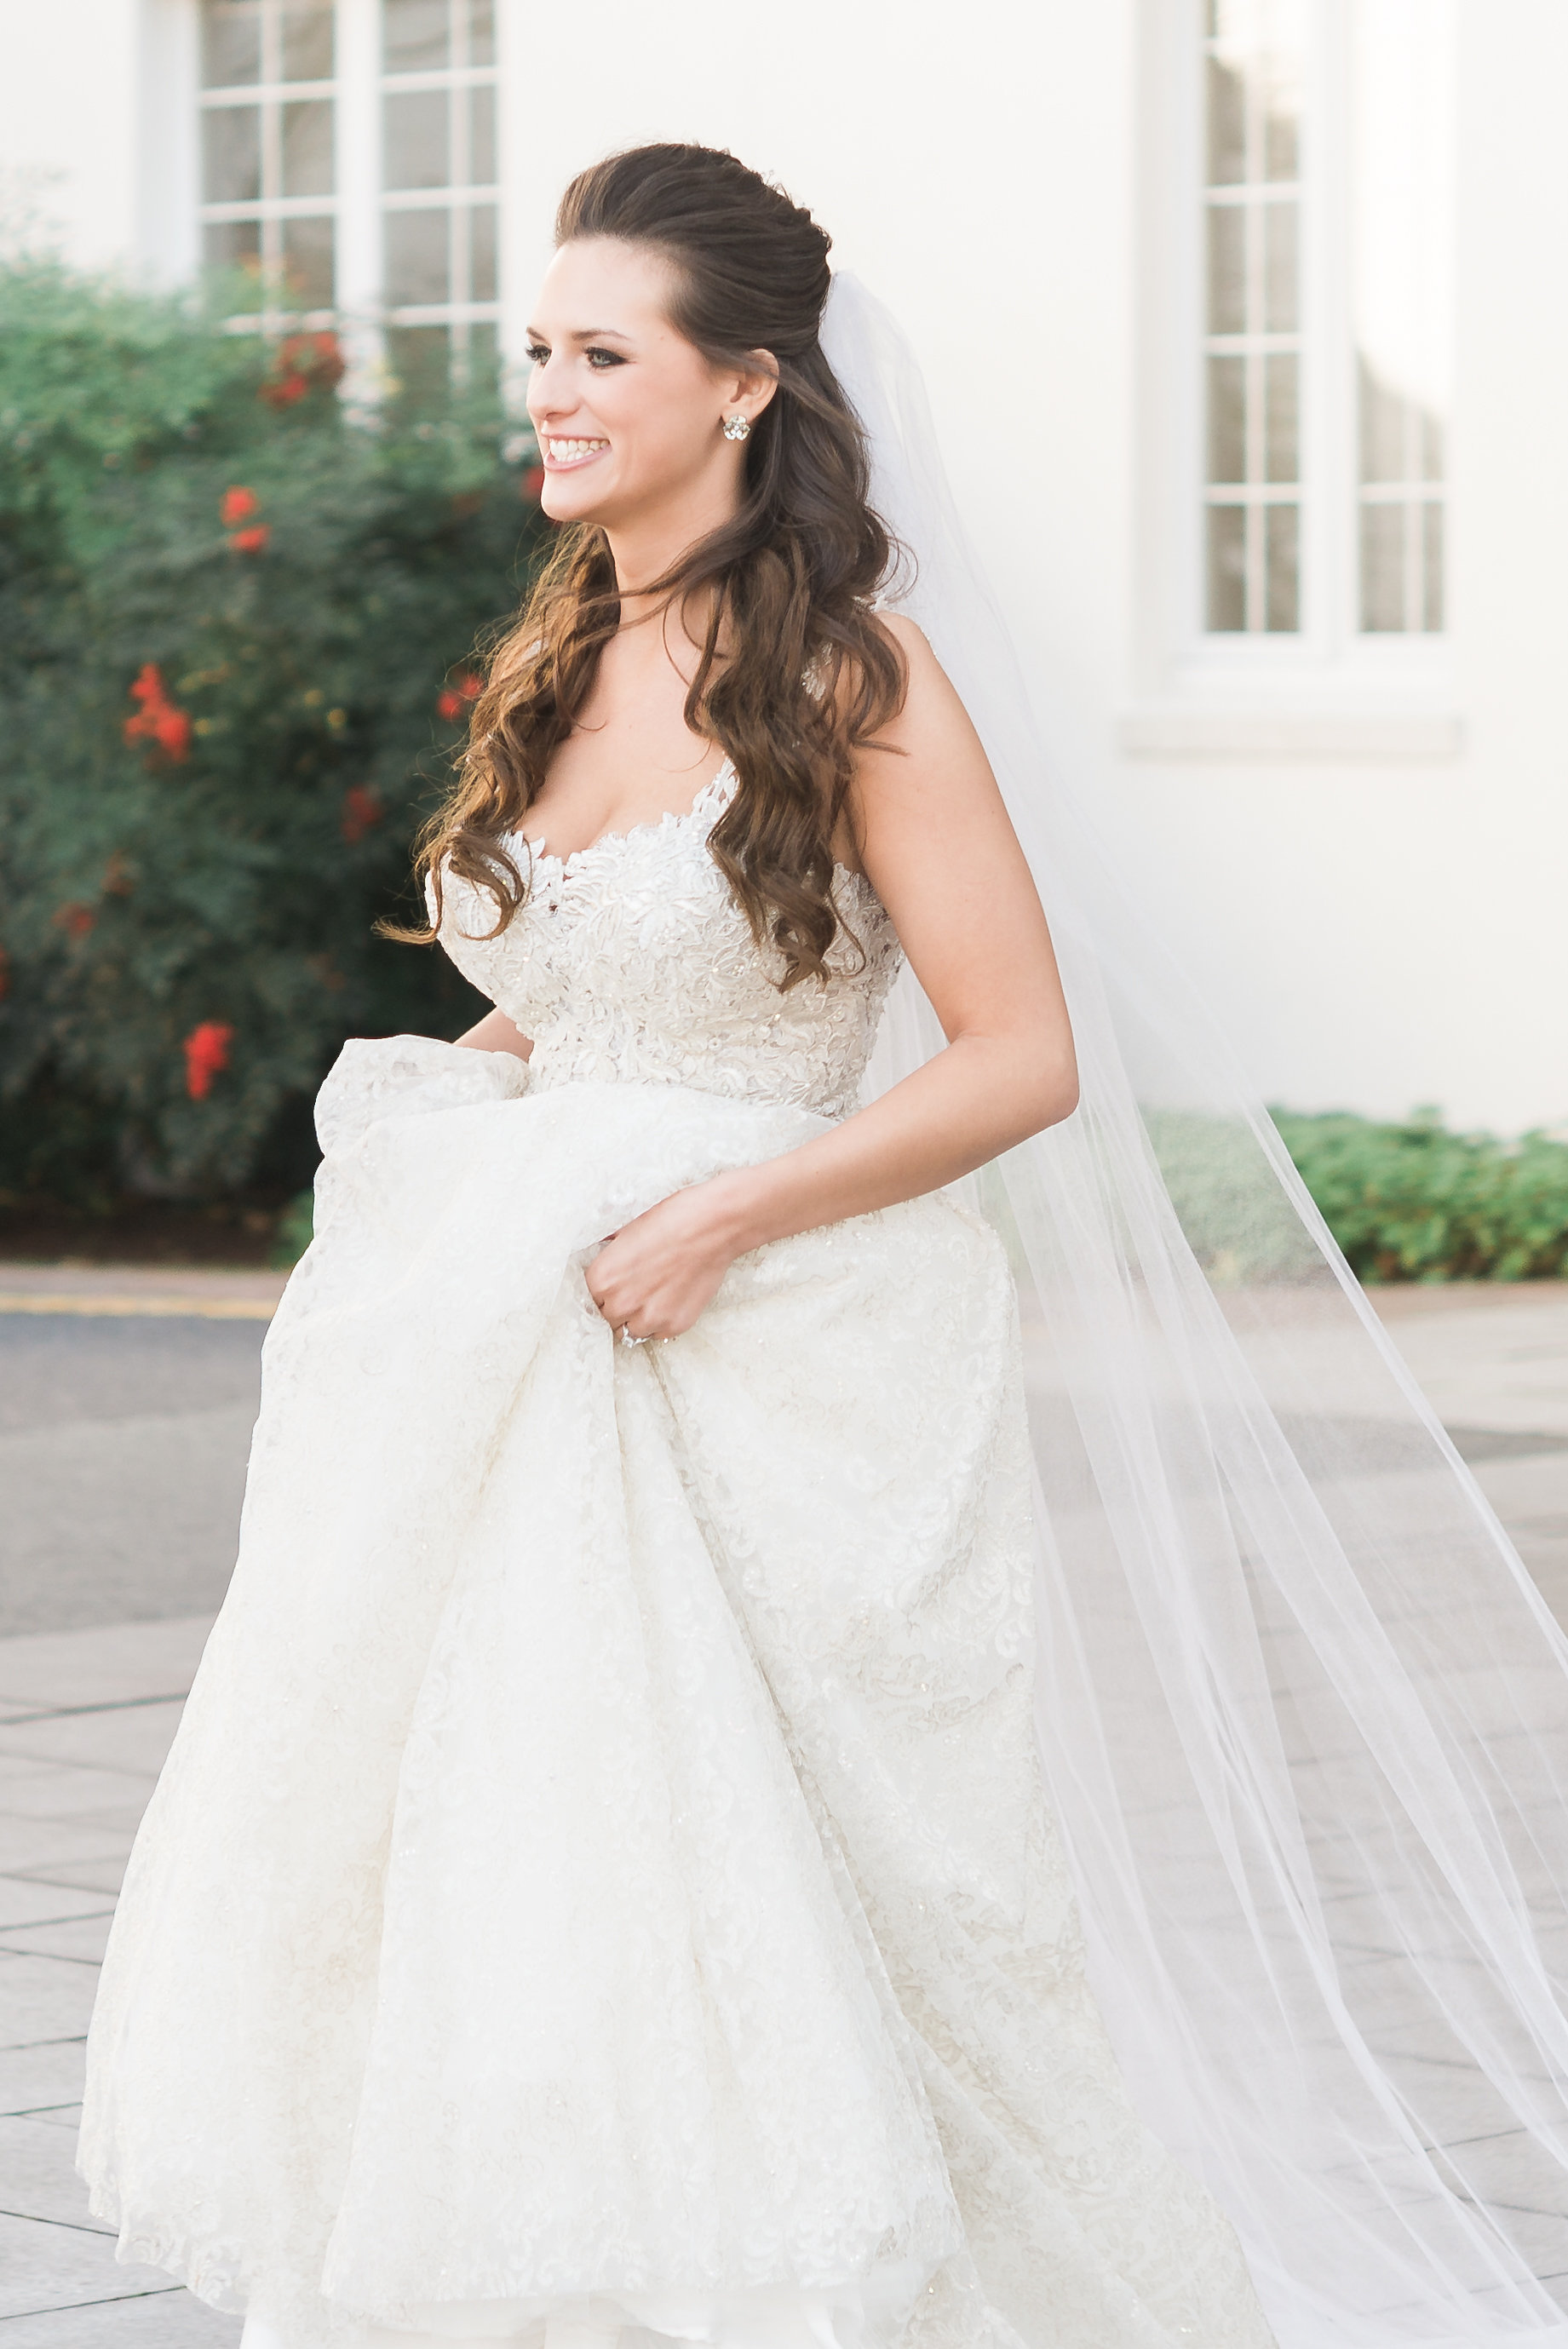 Soliloquy Bride in Francesca Miranda